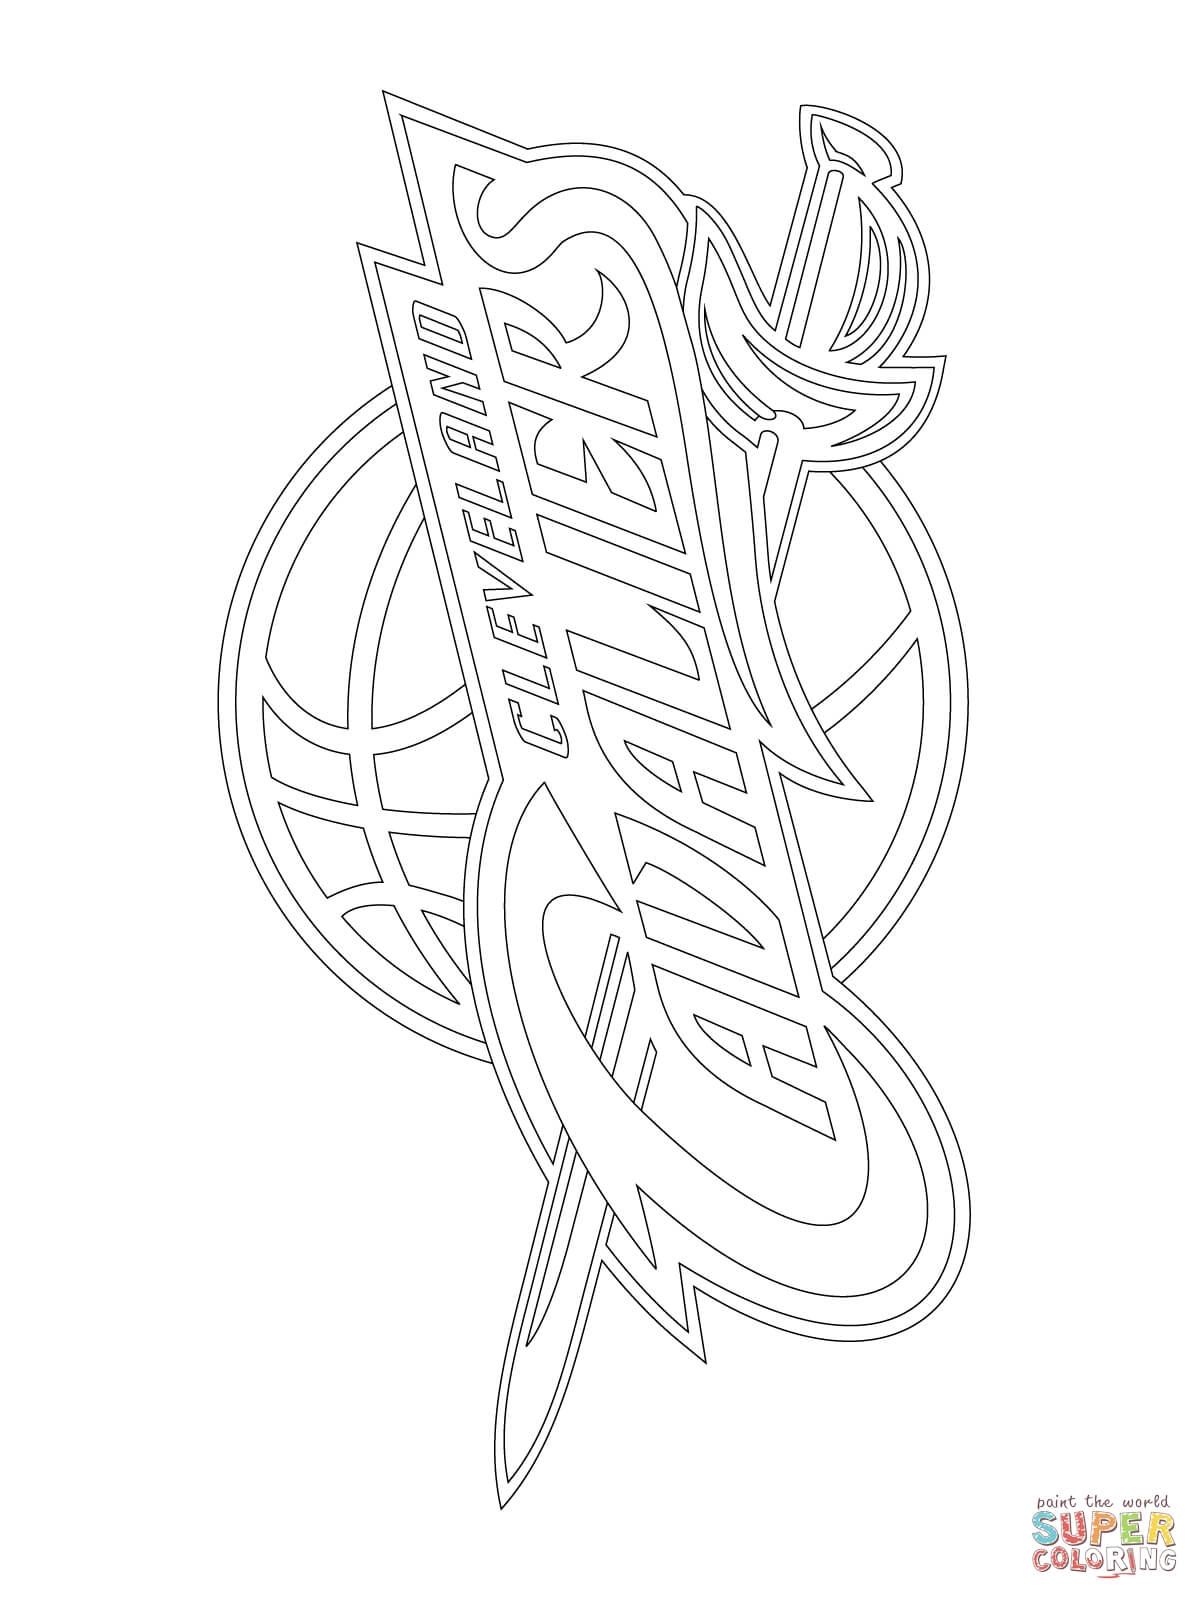 cavs coloring pages - cleveland cavaliers logo